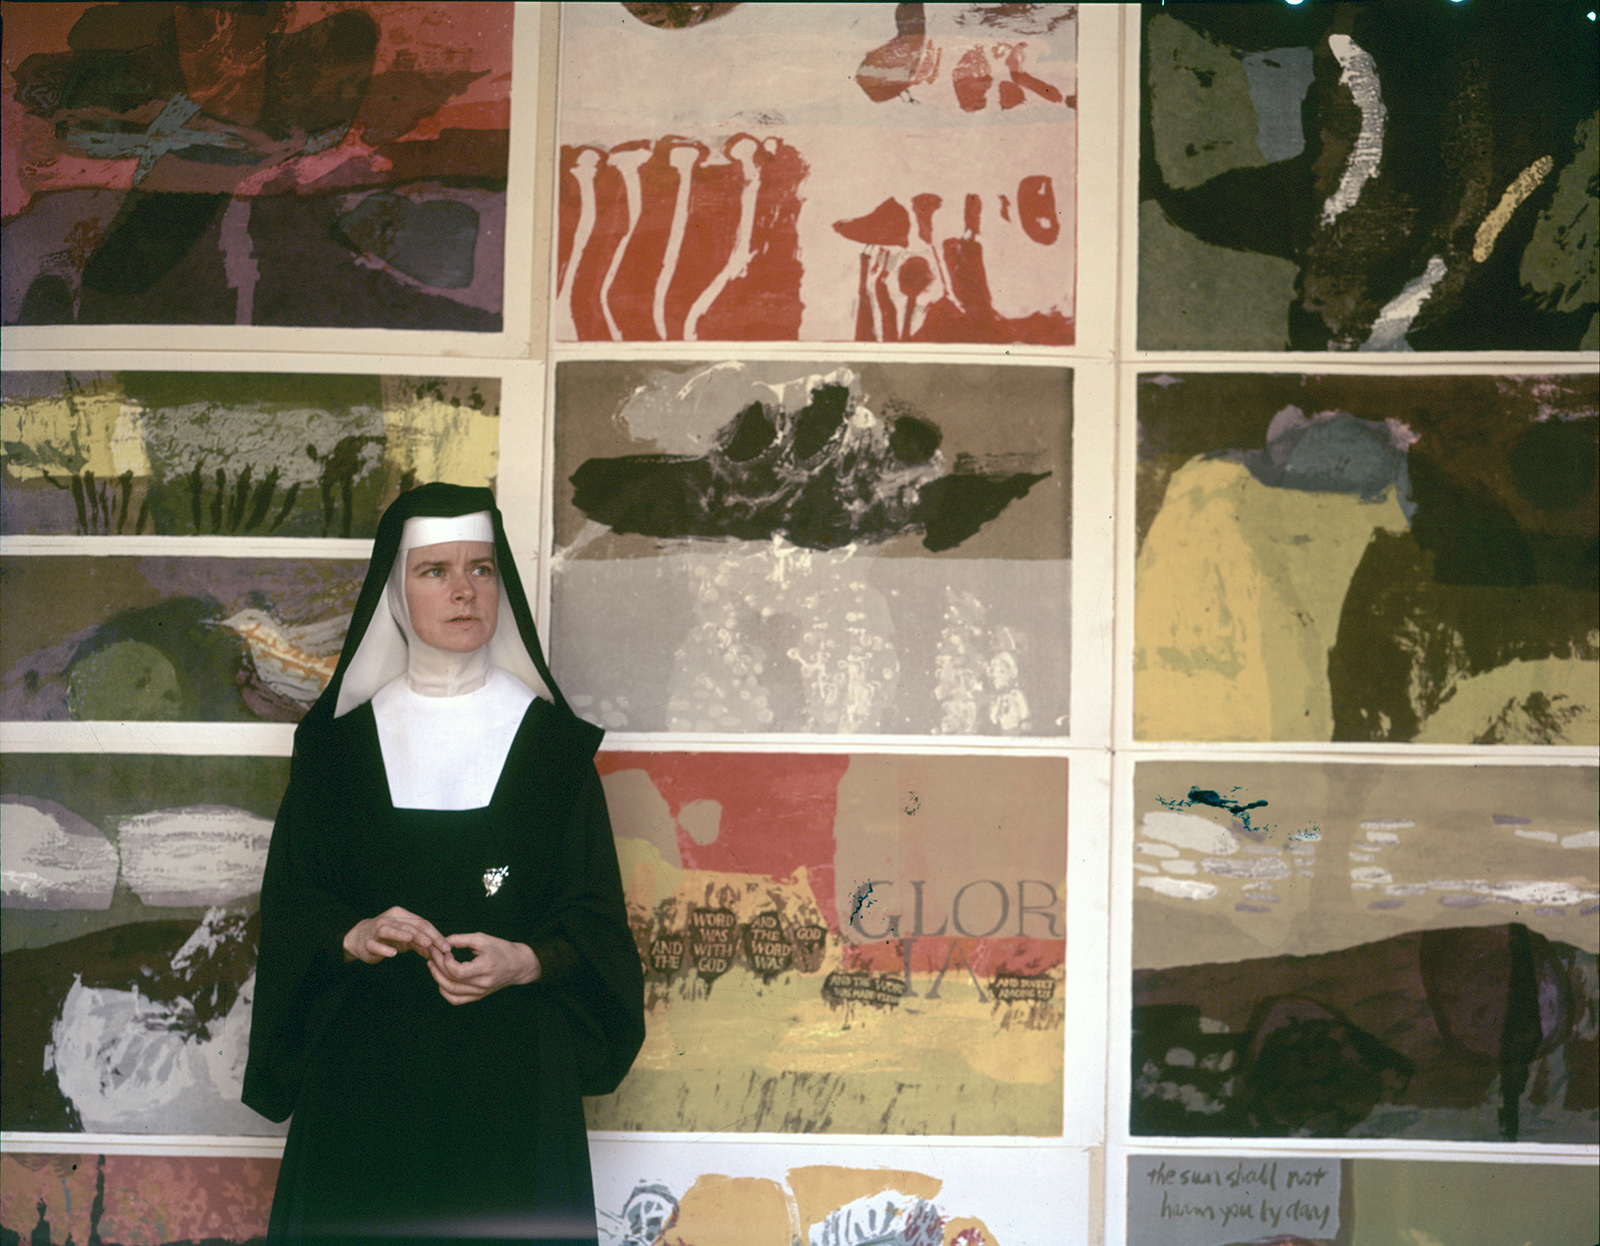 Corita Kent, known as Sister Mary Corita, in front of some of her artwork. Photo courtesy of Corita Art Center/Immaculate Heart Community